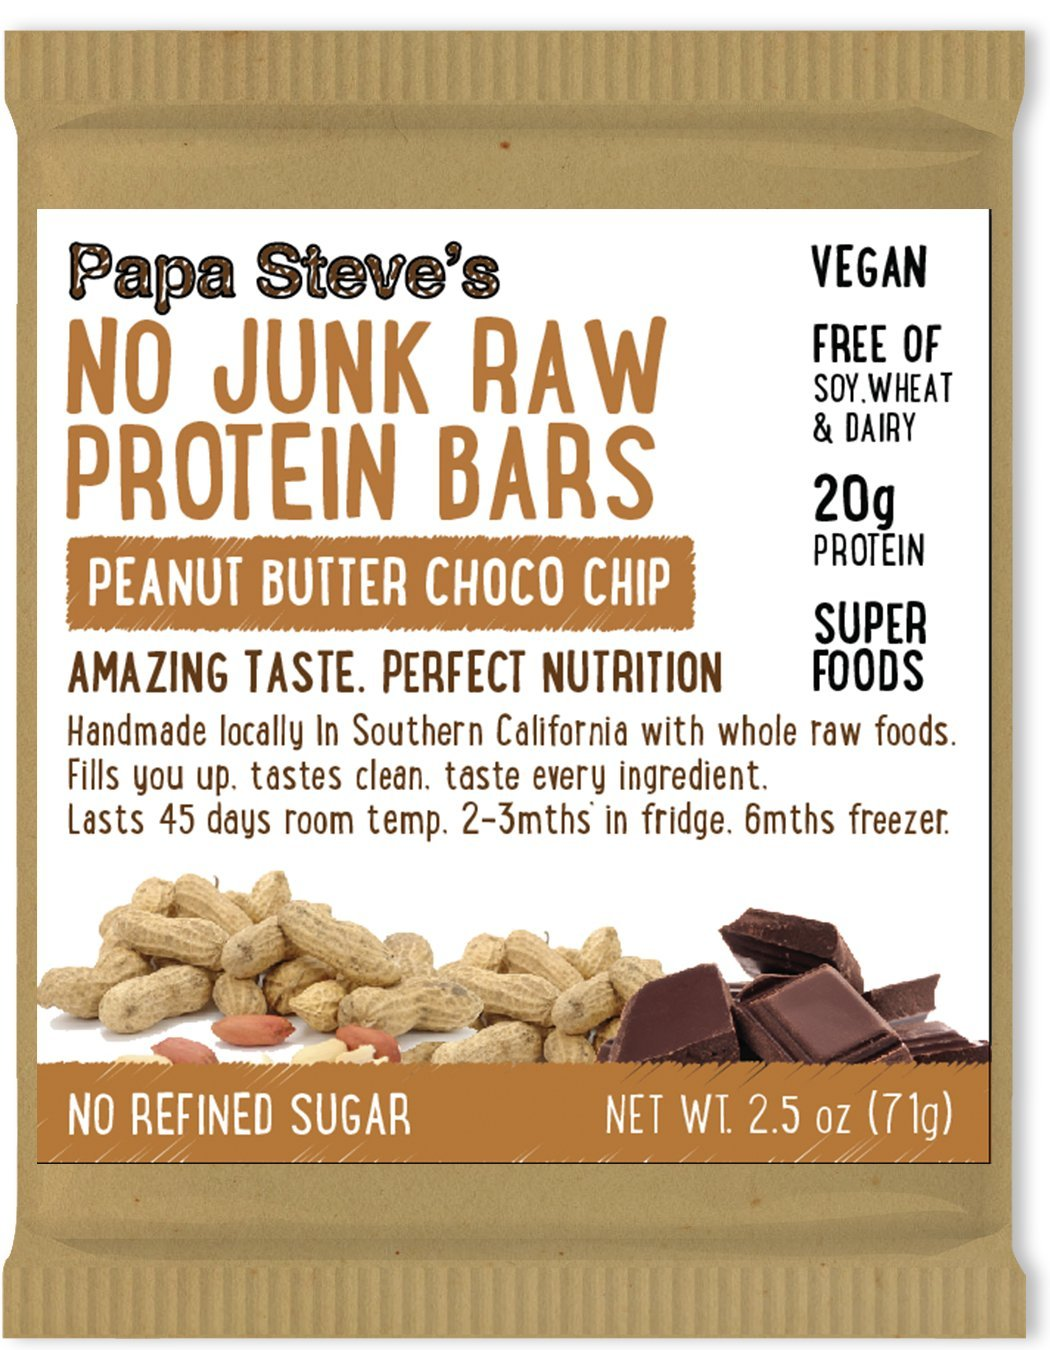 Papa Steve's No Junk Raw Protein Bars, Dairy Free Peanut Butter Choco Chip, 2.5 Oz, 10 Count